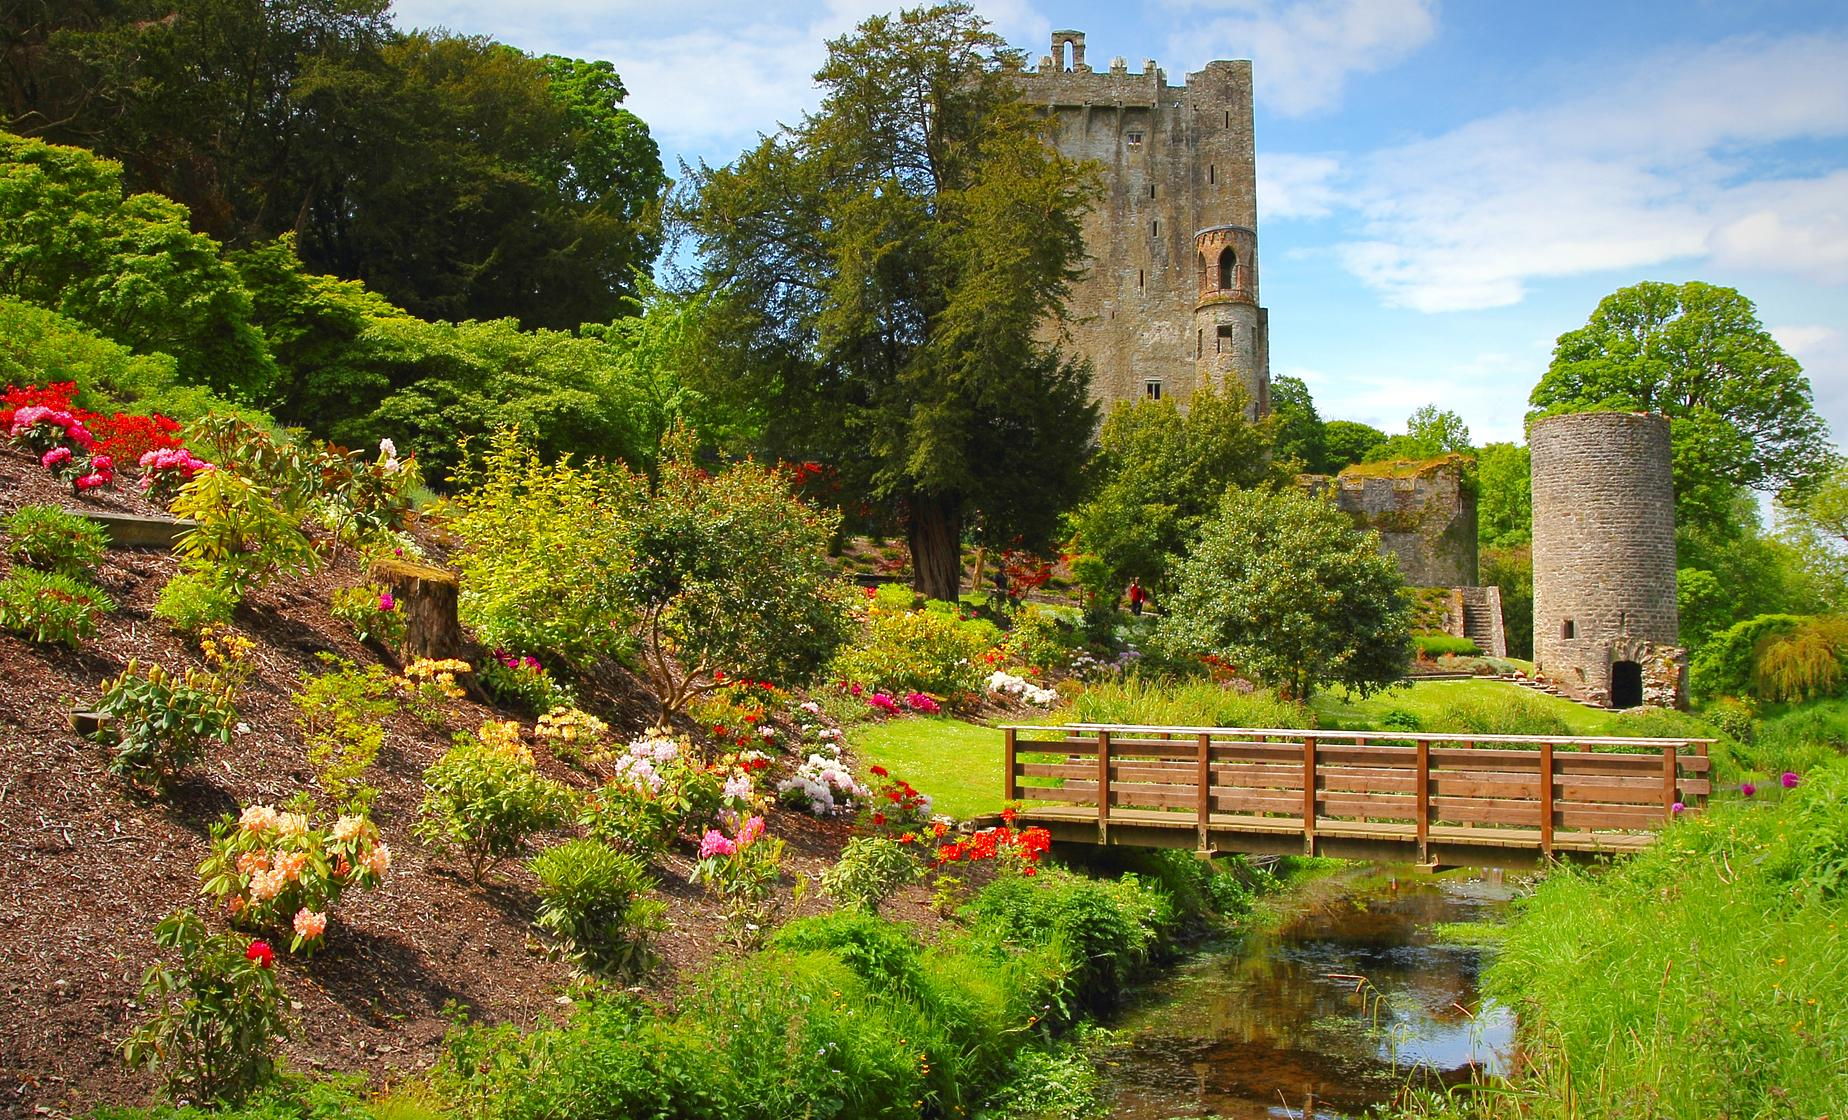 Private South of Ireland Tour in Cork (Blarney, Kinsale, Charles Fort)